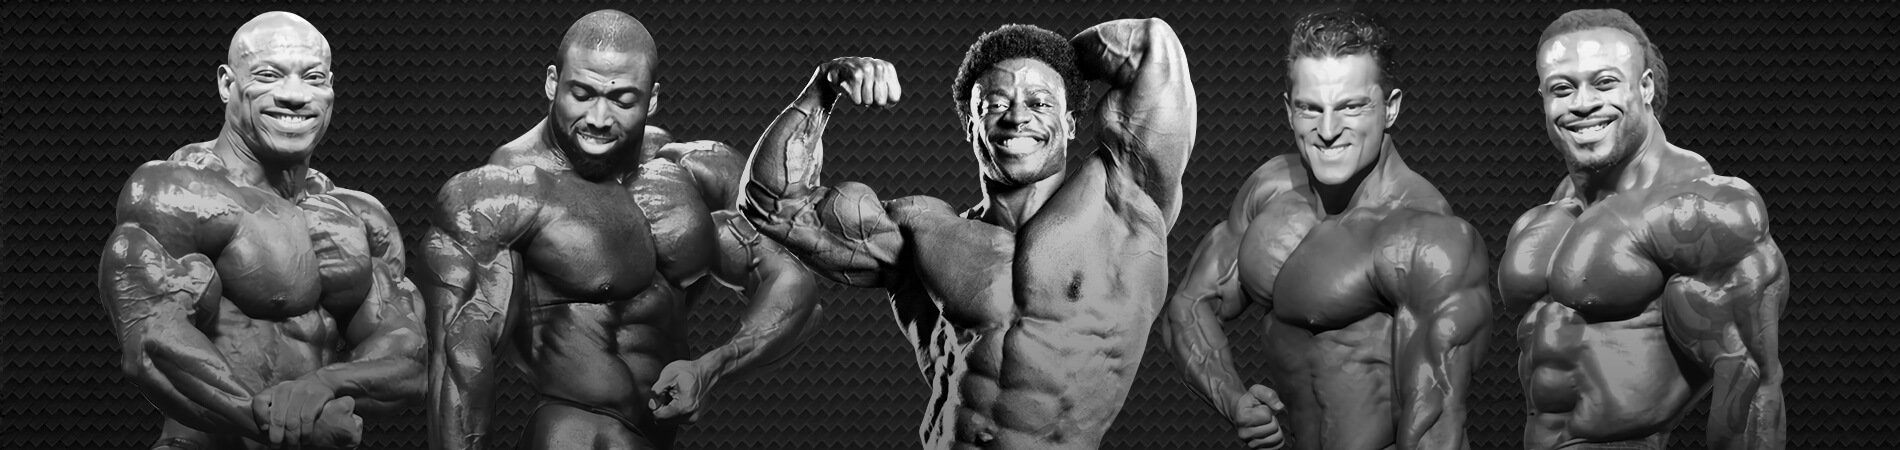 2018 Arnold Classic Results and Surprises - Old School Labs